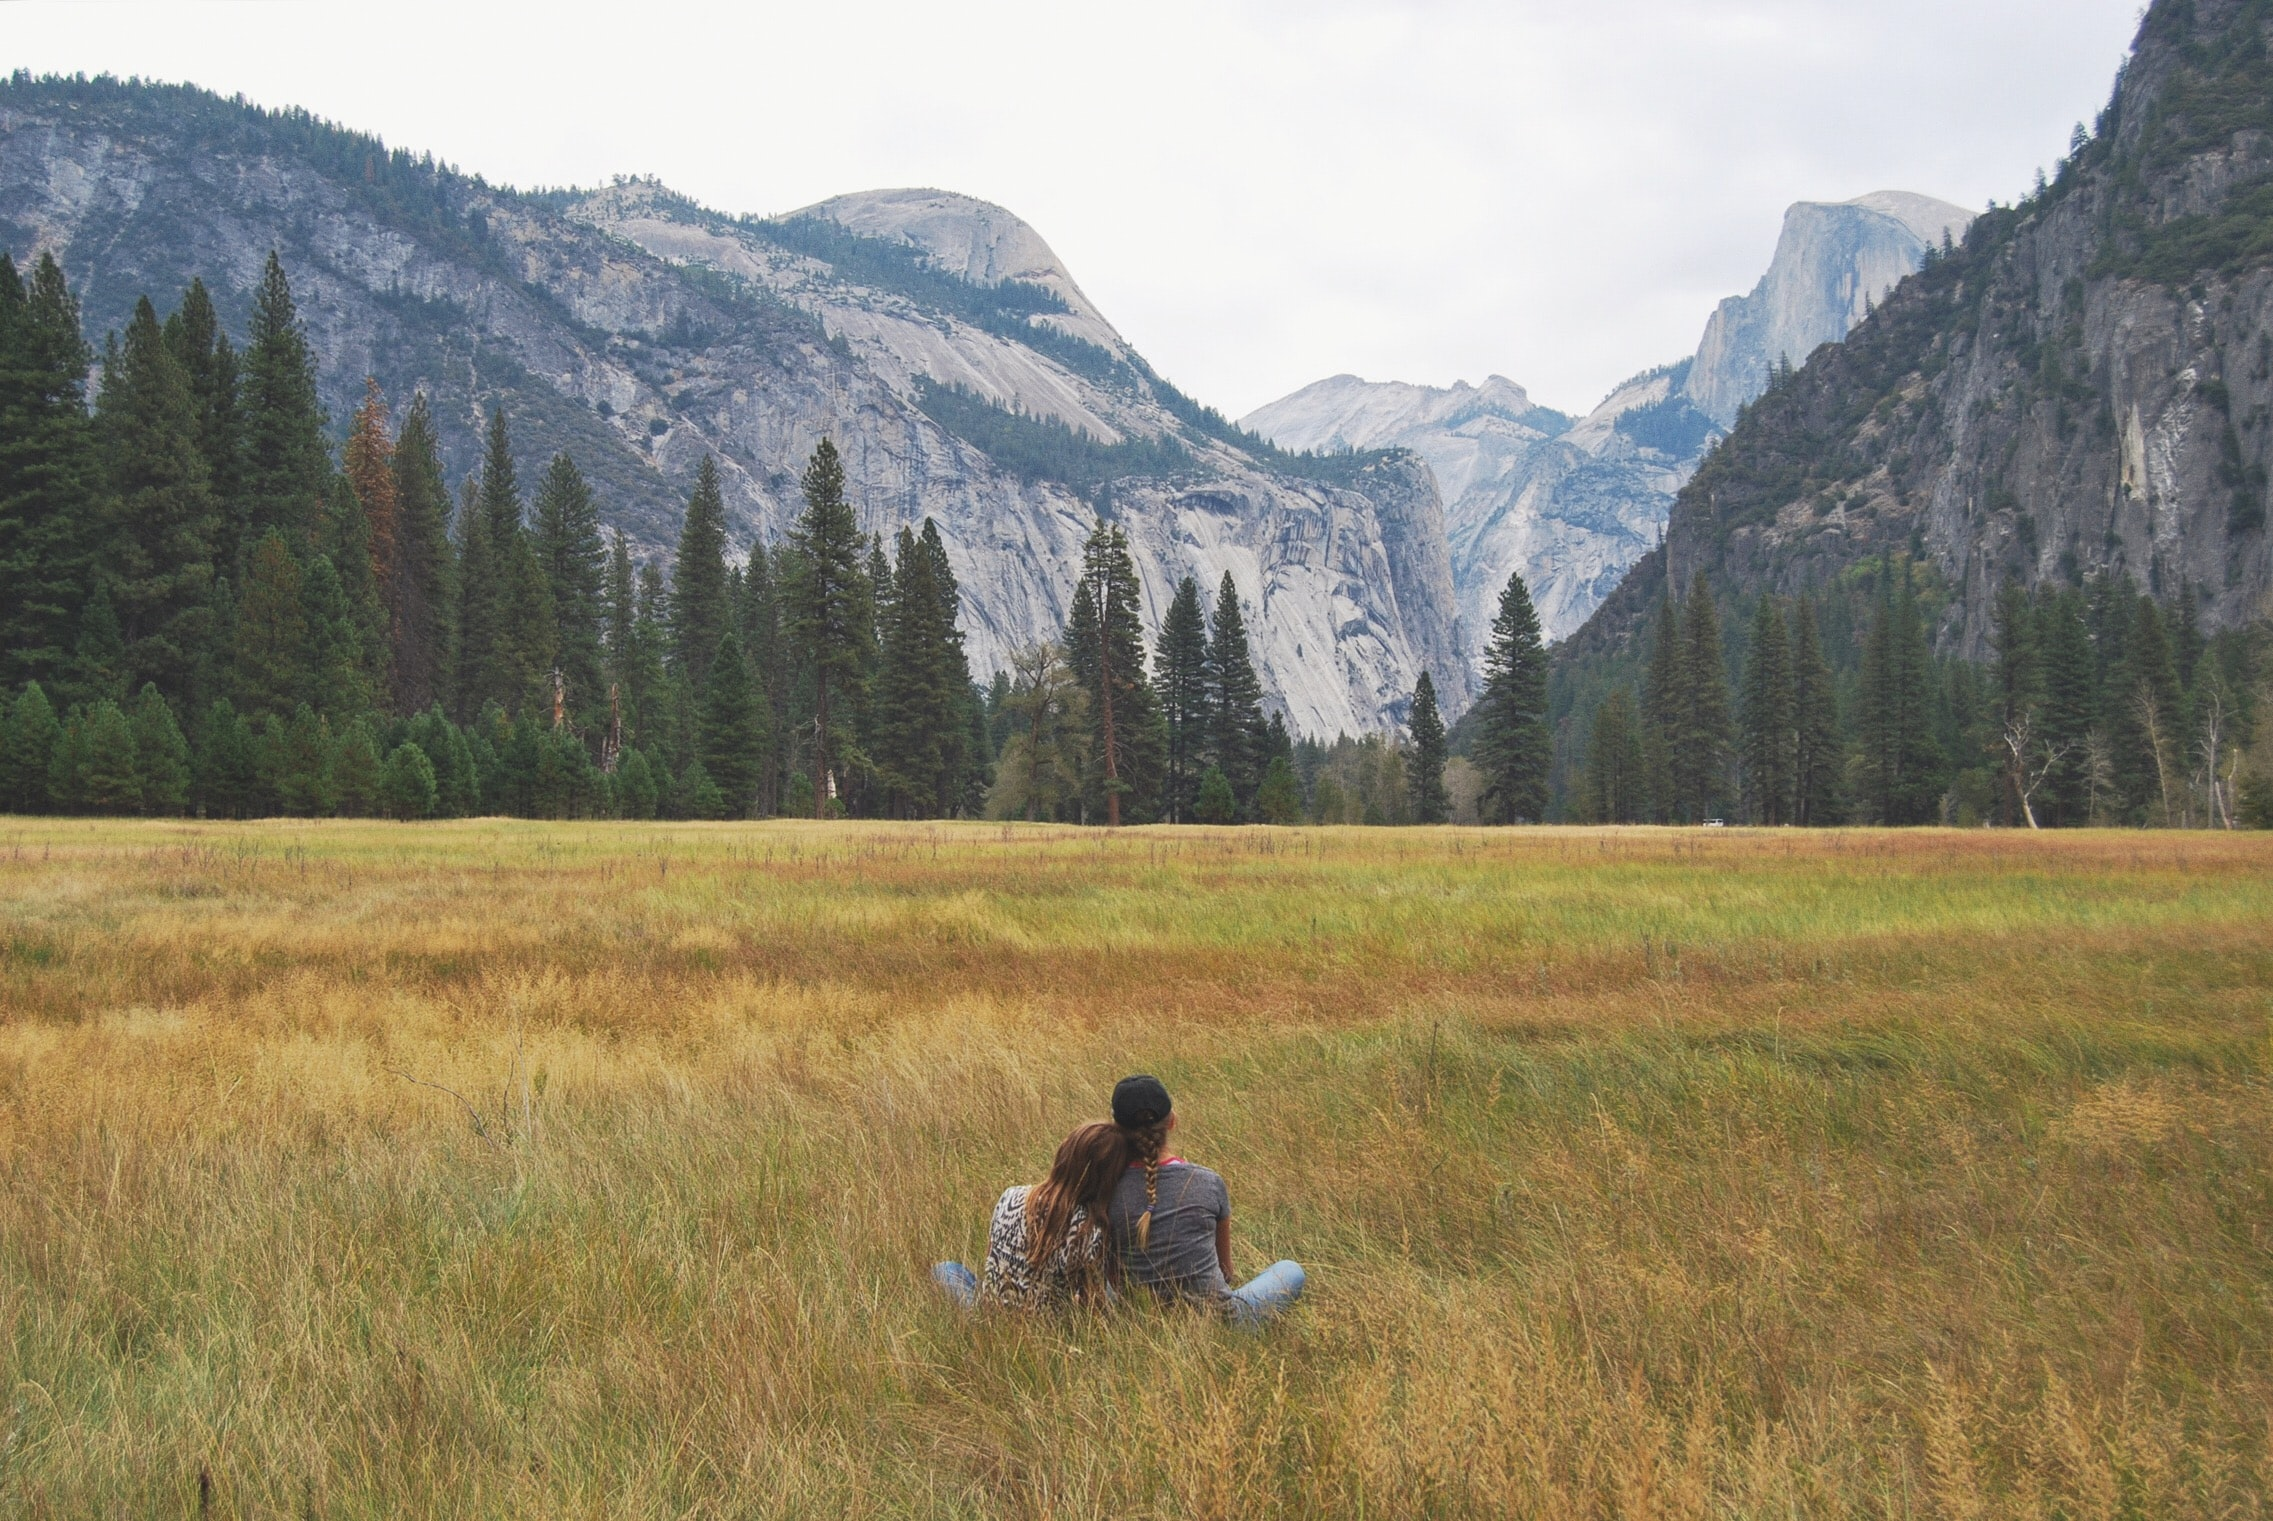 Two people taking in the immense beauty of a natural park